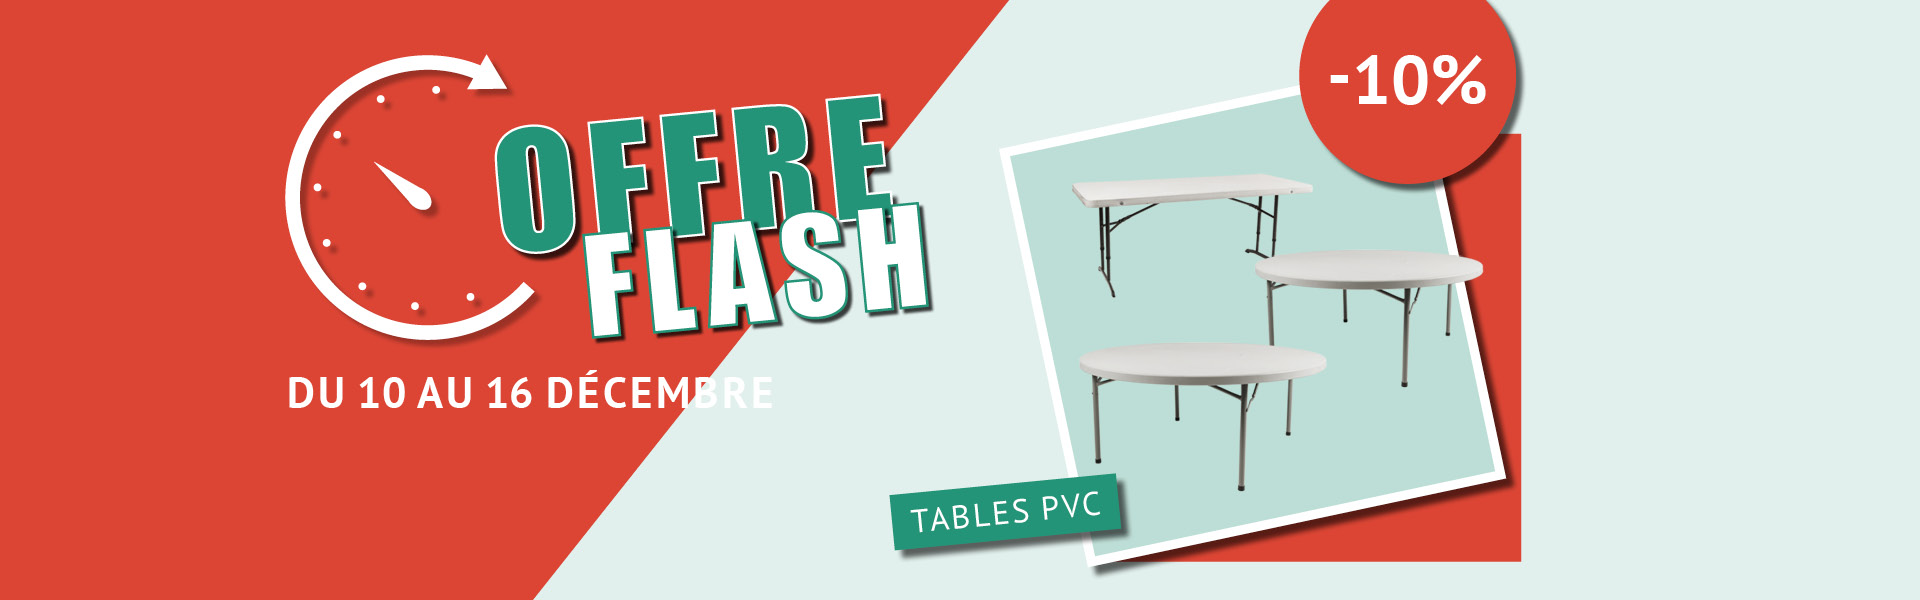 7857308home_ABC_offre_flash_semaine50